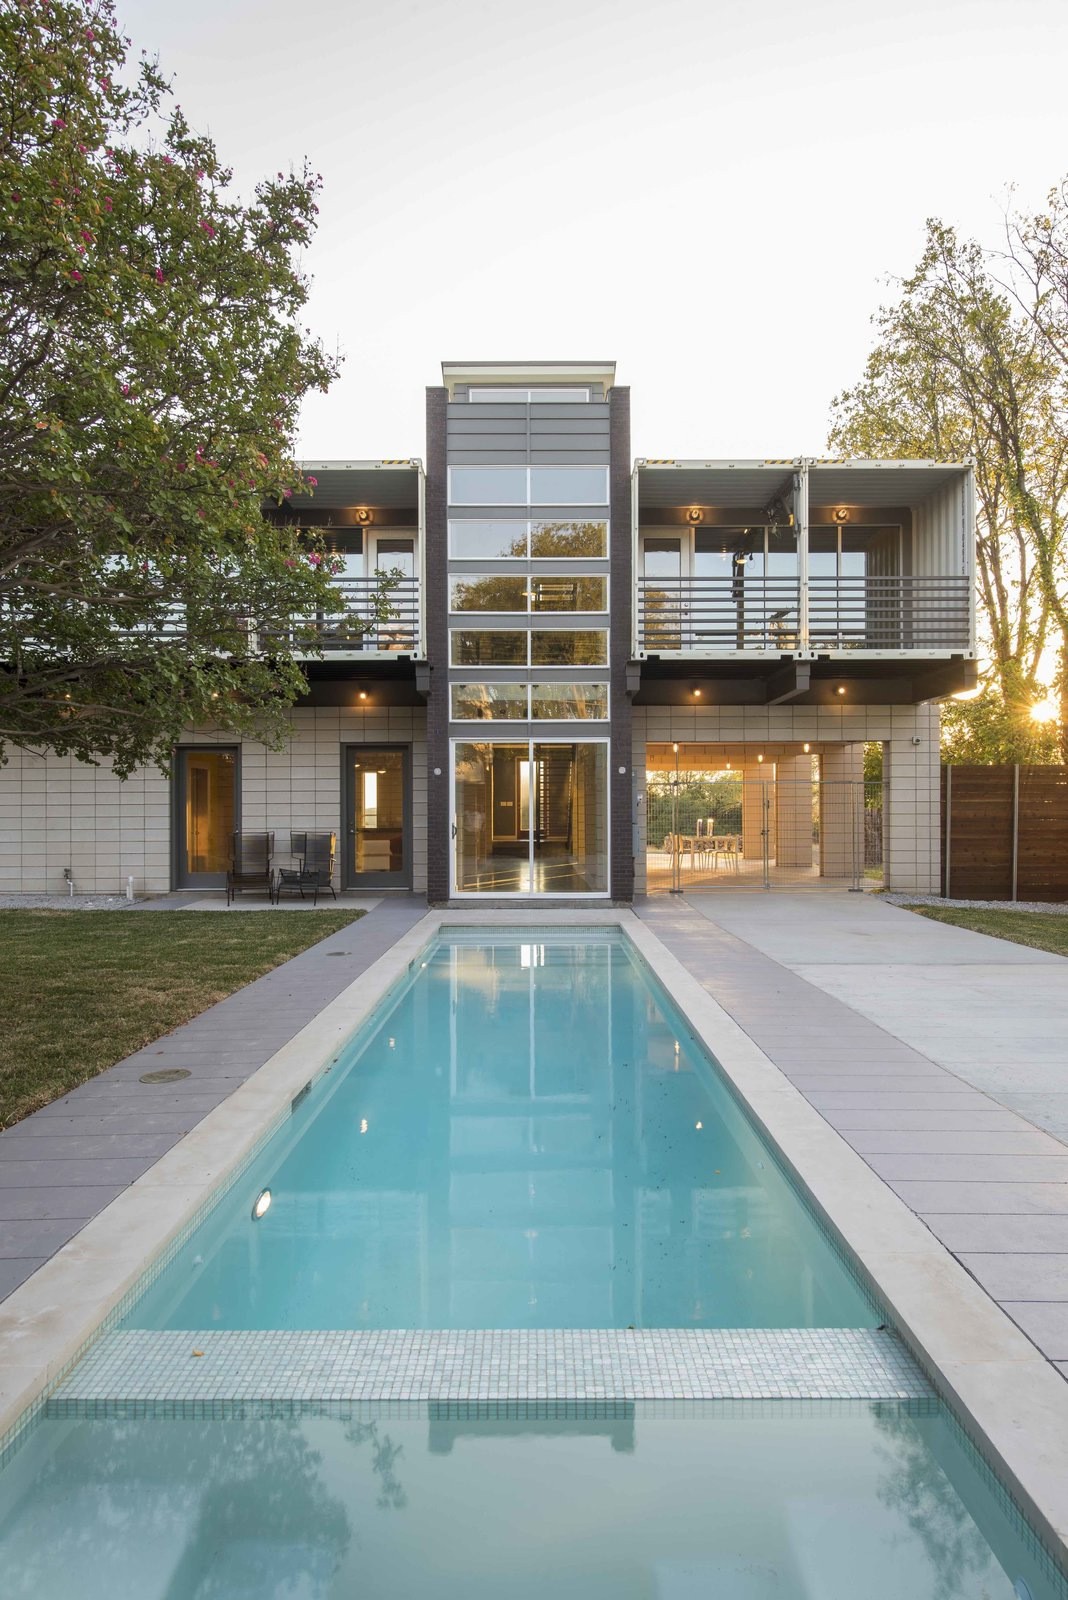 A 40 foot by 10 foot pool is designed to echo the house's tower with an almost reflection-like alignment.  This House Was Built Out of 14 Shipping Containers by Esha Chhabra